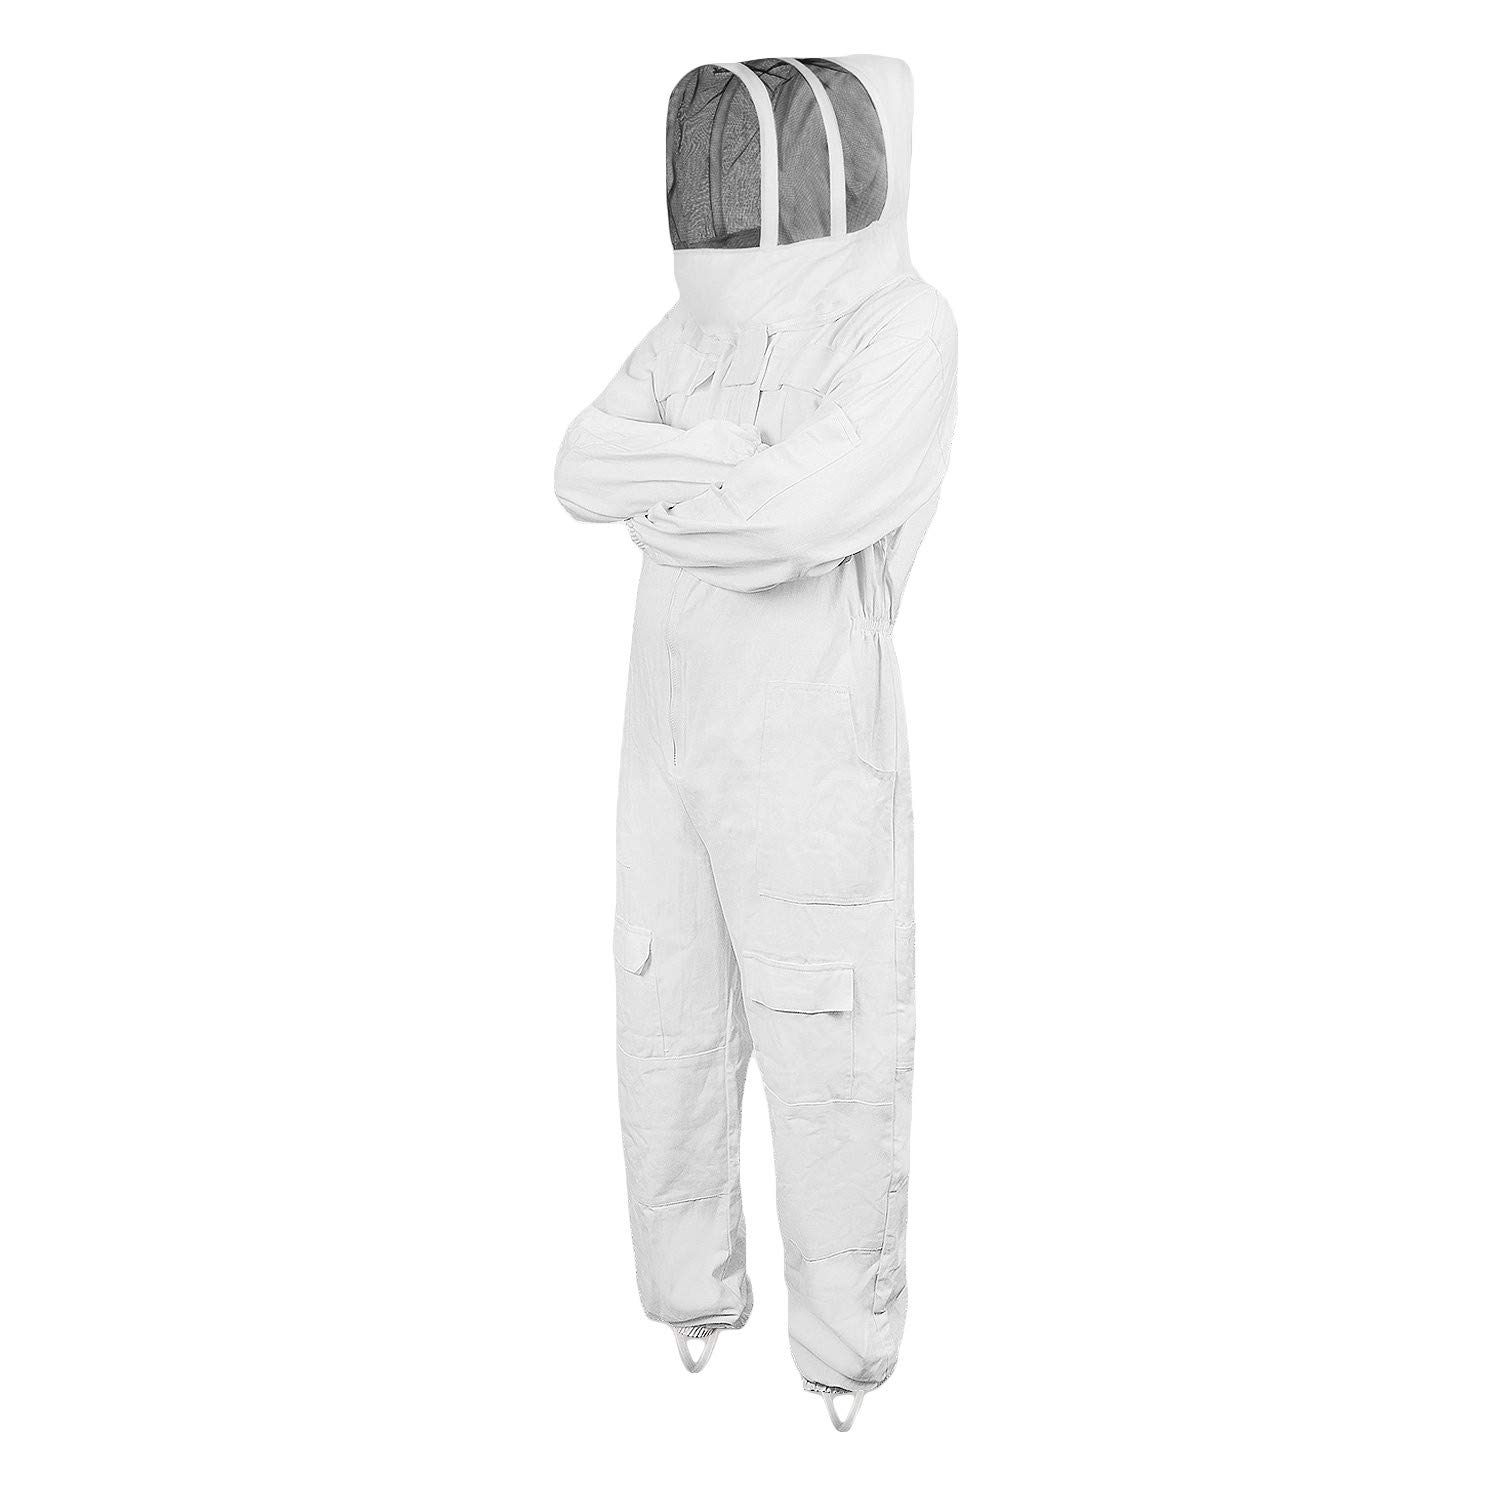 Zimco Cycle wear Full Beekeeping Suit Protective Beekeeper with Veil Pest Control Bee Costume (Medium) by Zimco Cycle wear